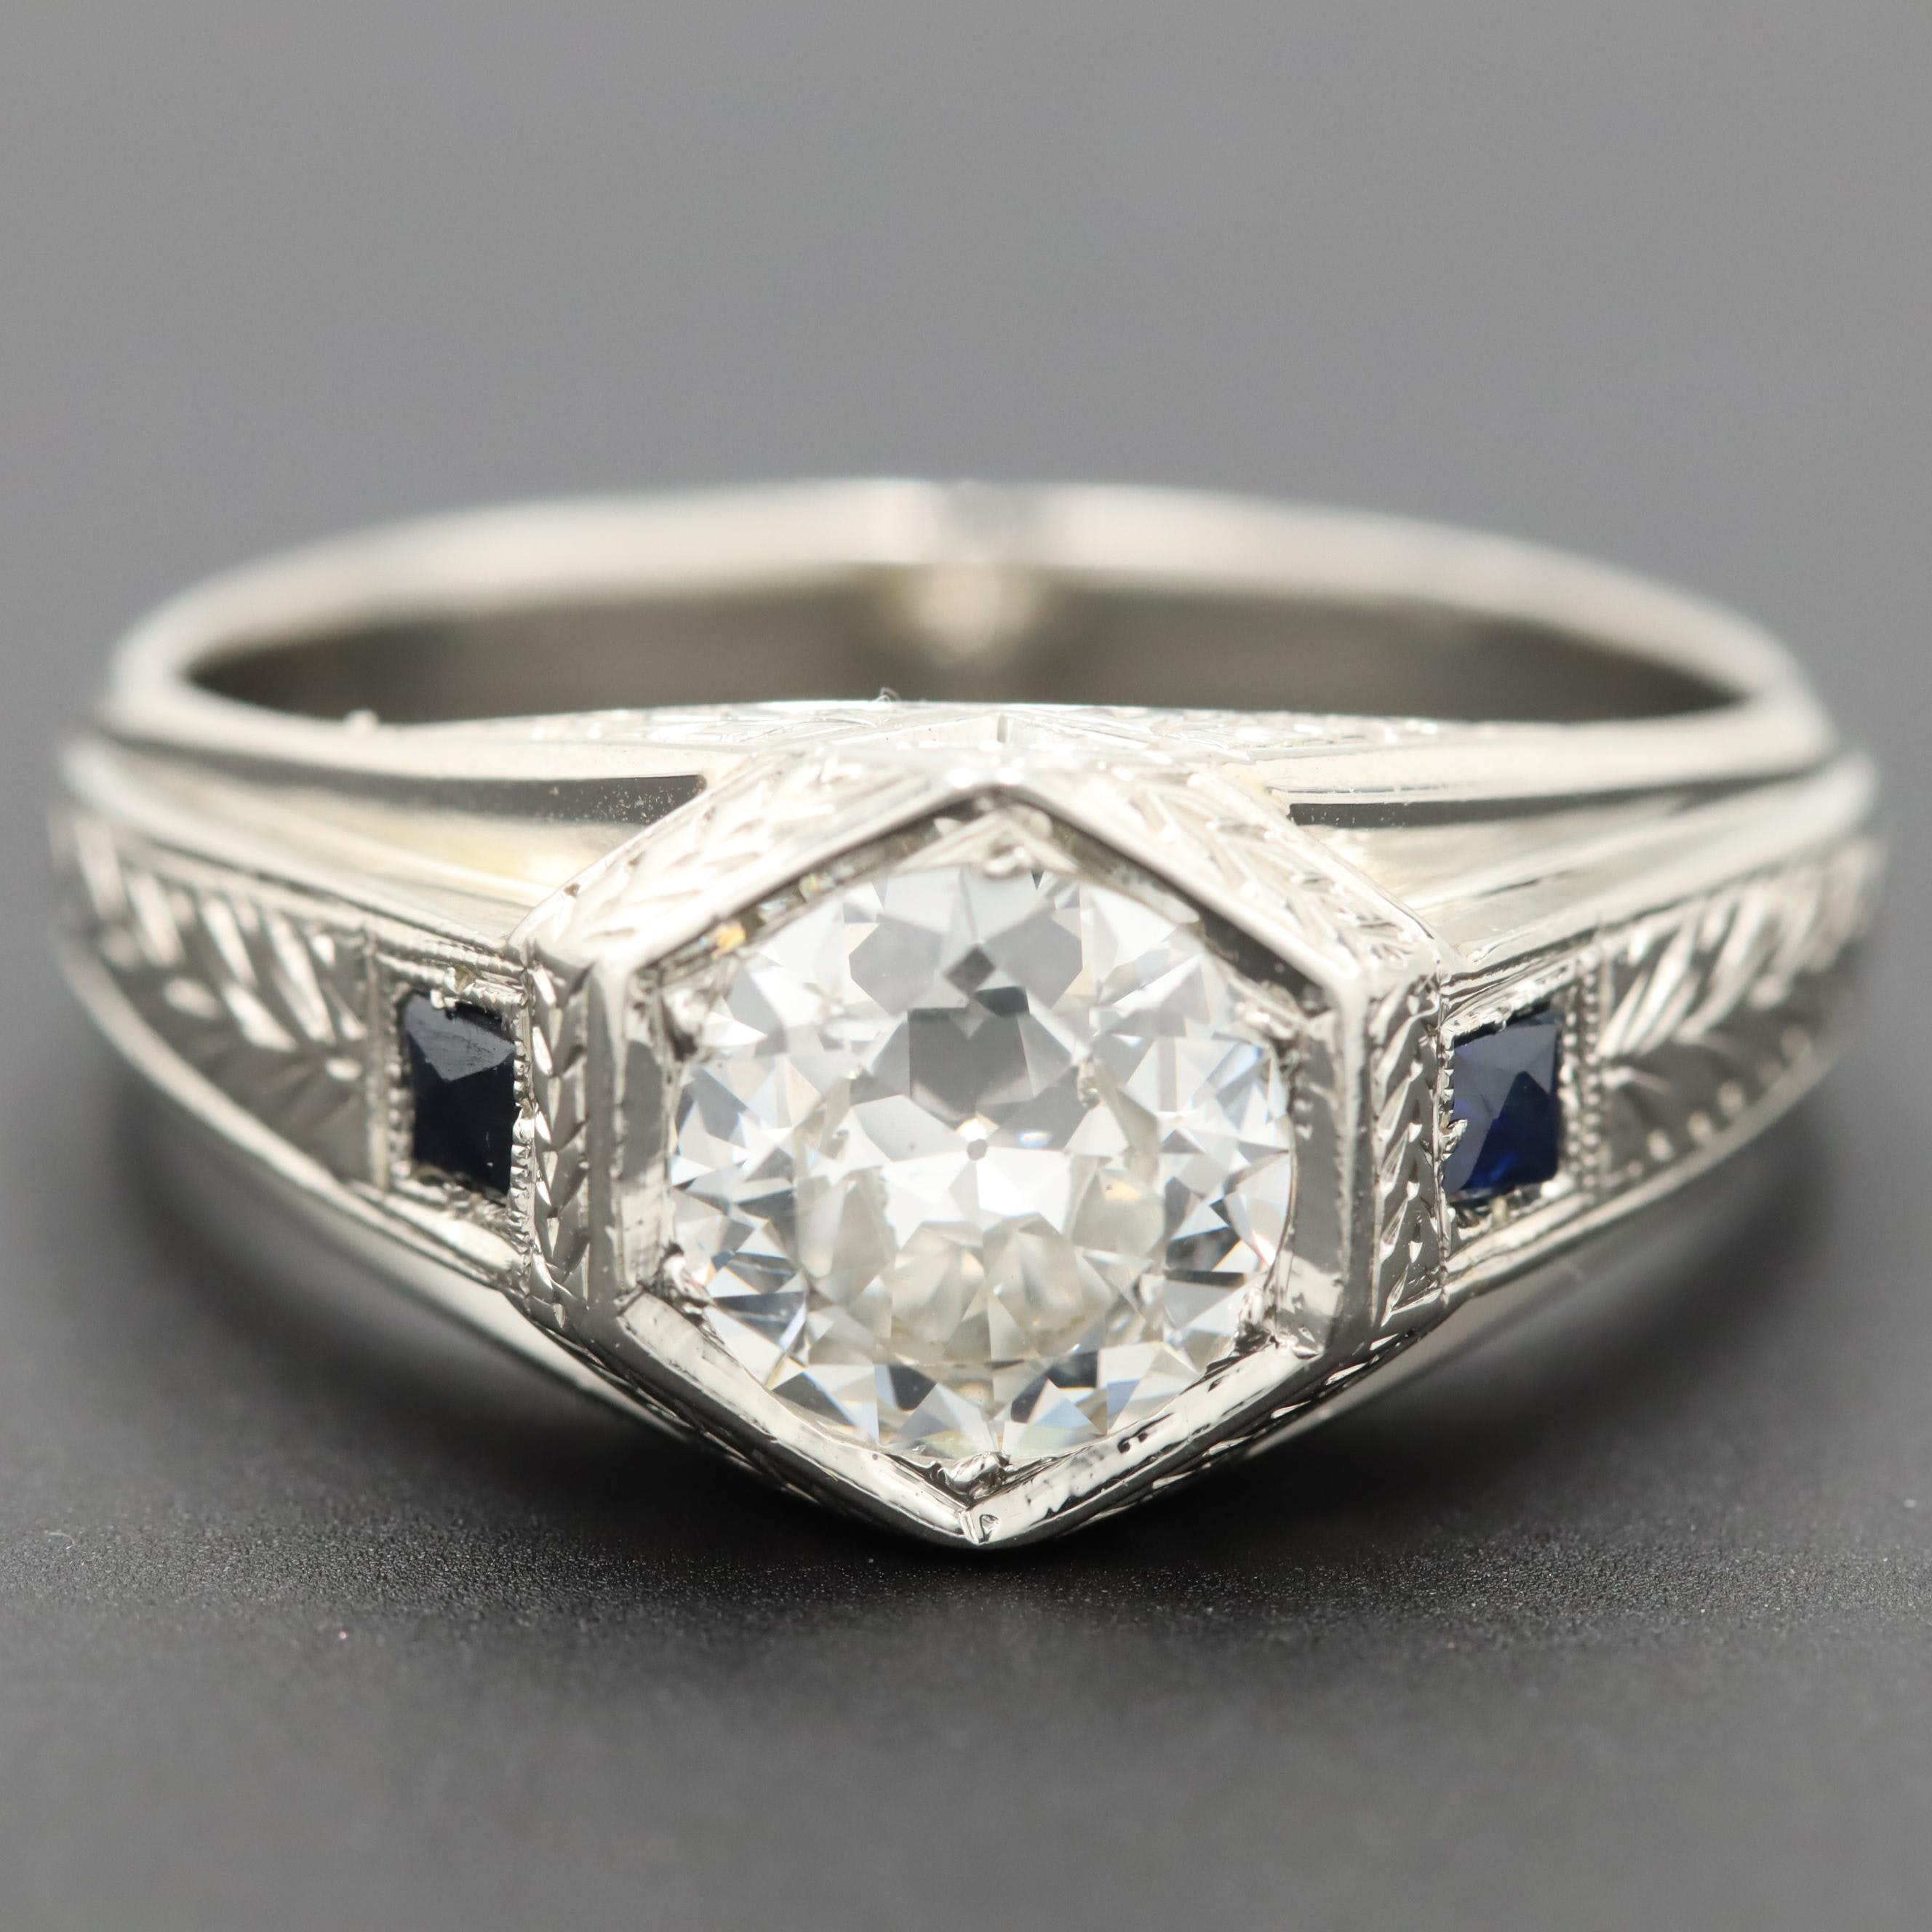 Art Deco 18K White Gold 1.22 CT Diamond and Synthetic Sapphire Ring